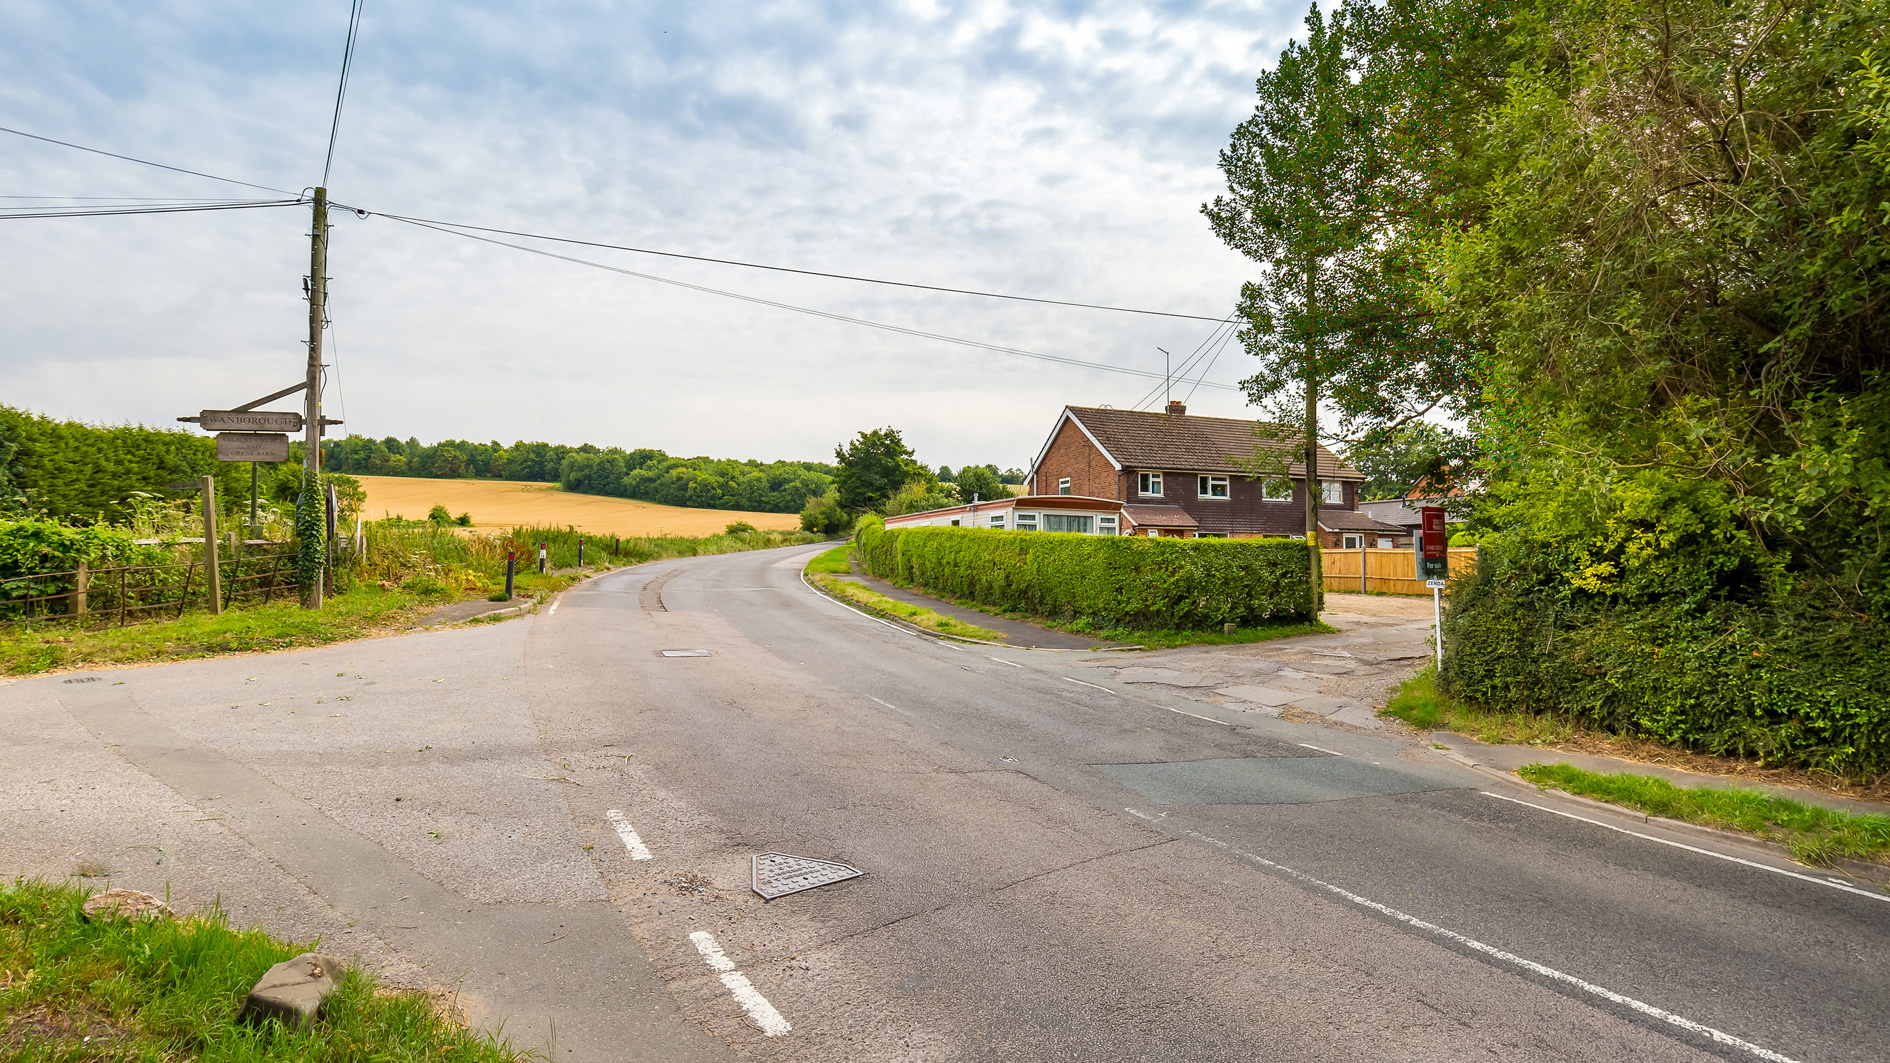 Land for sale at Manor Farm Cottages entrance